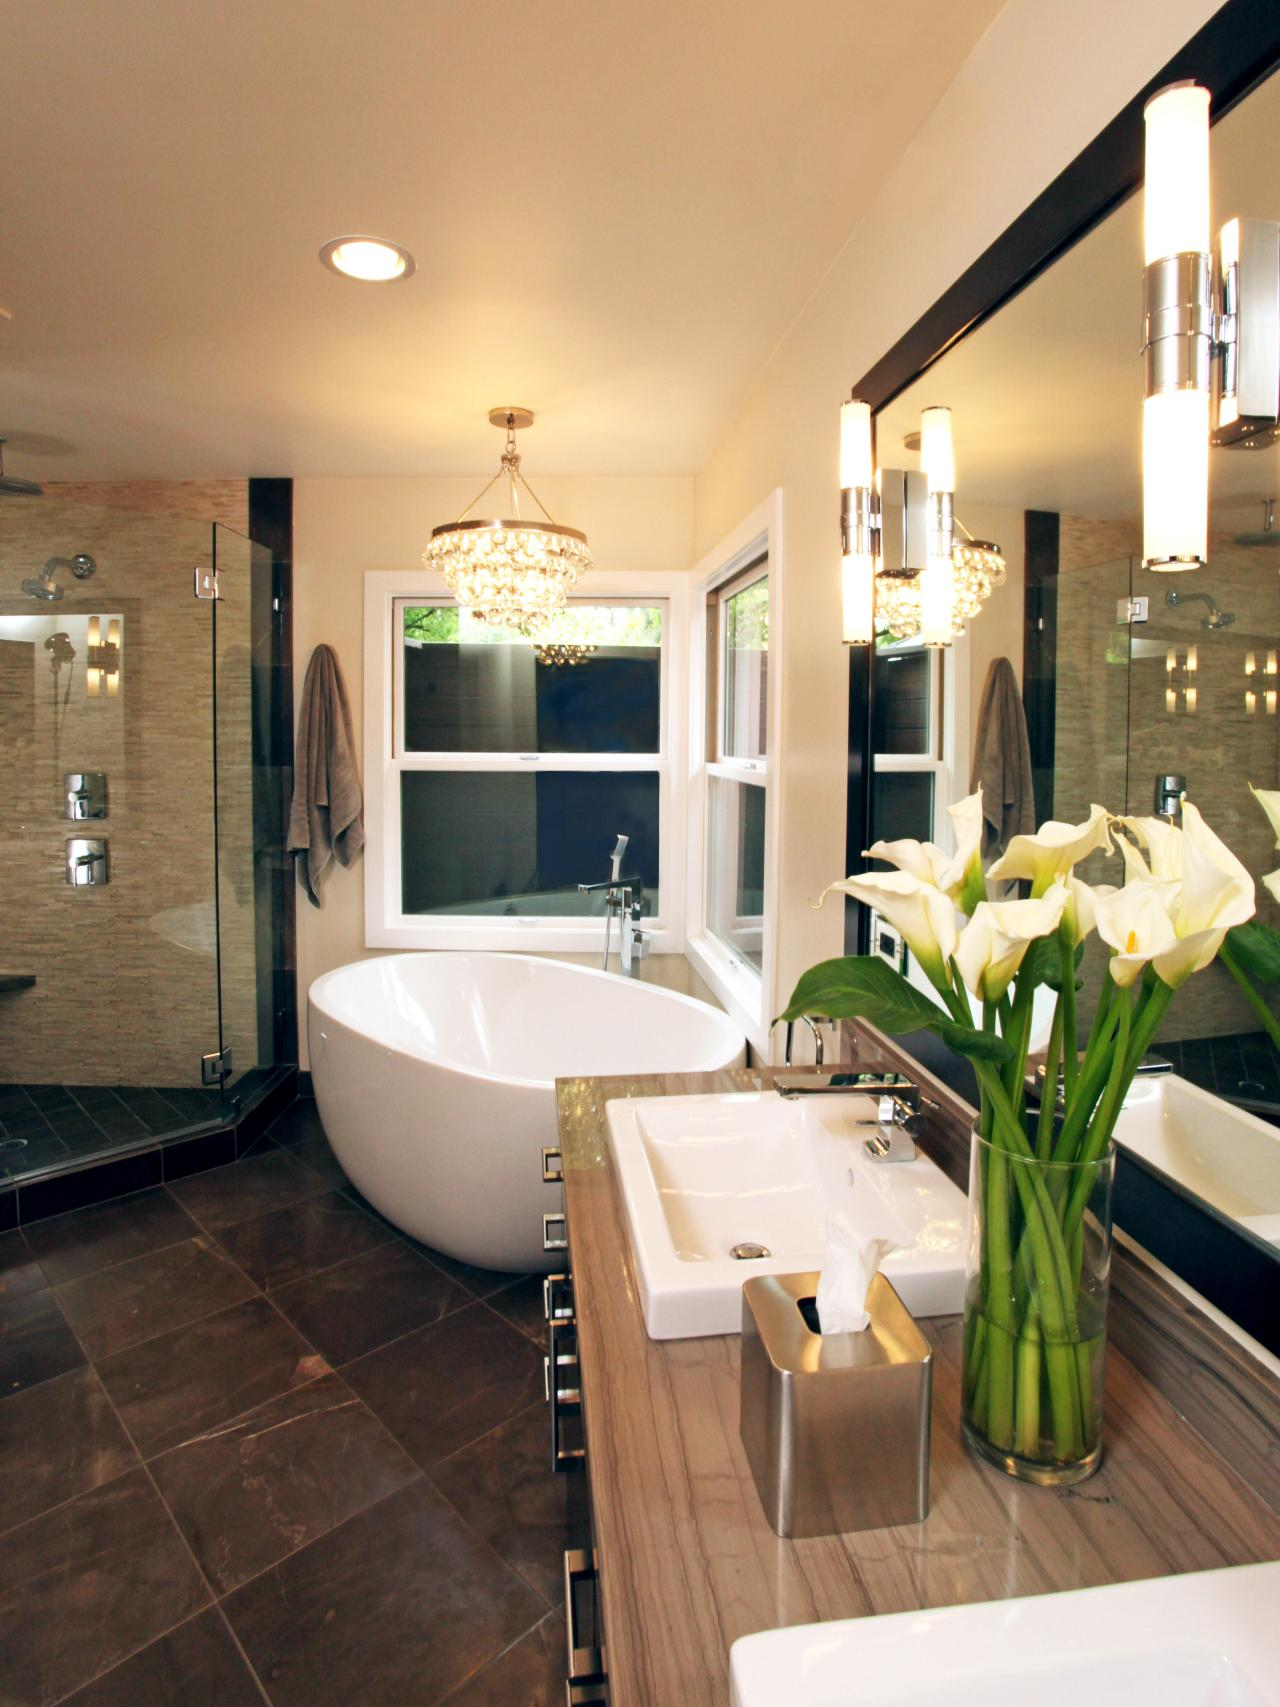 20 luxurious bathrooms with elegant chandelier lighting view in gallery bathroom lighting 9 aloadofball Choice Image